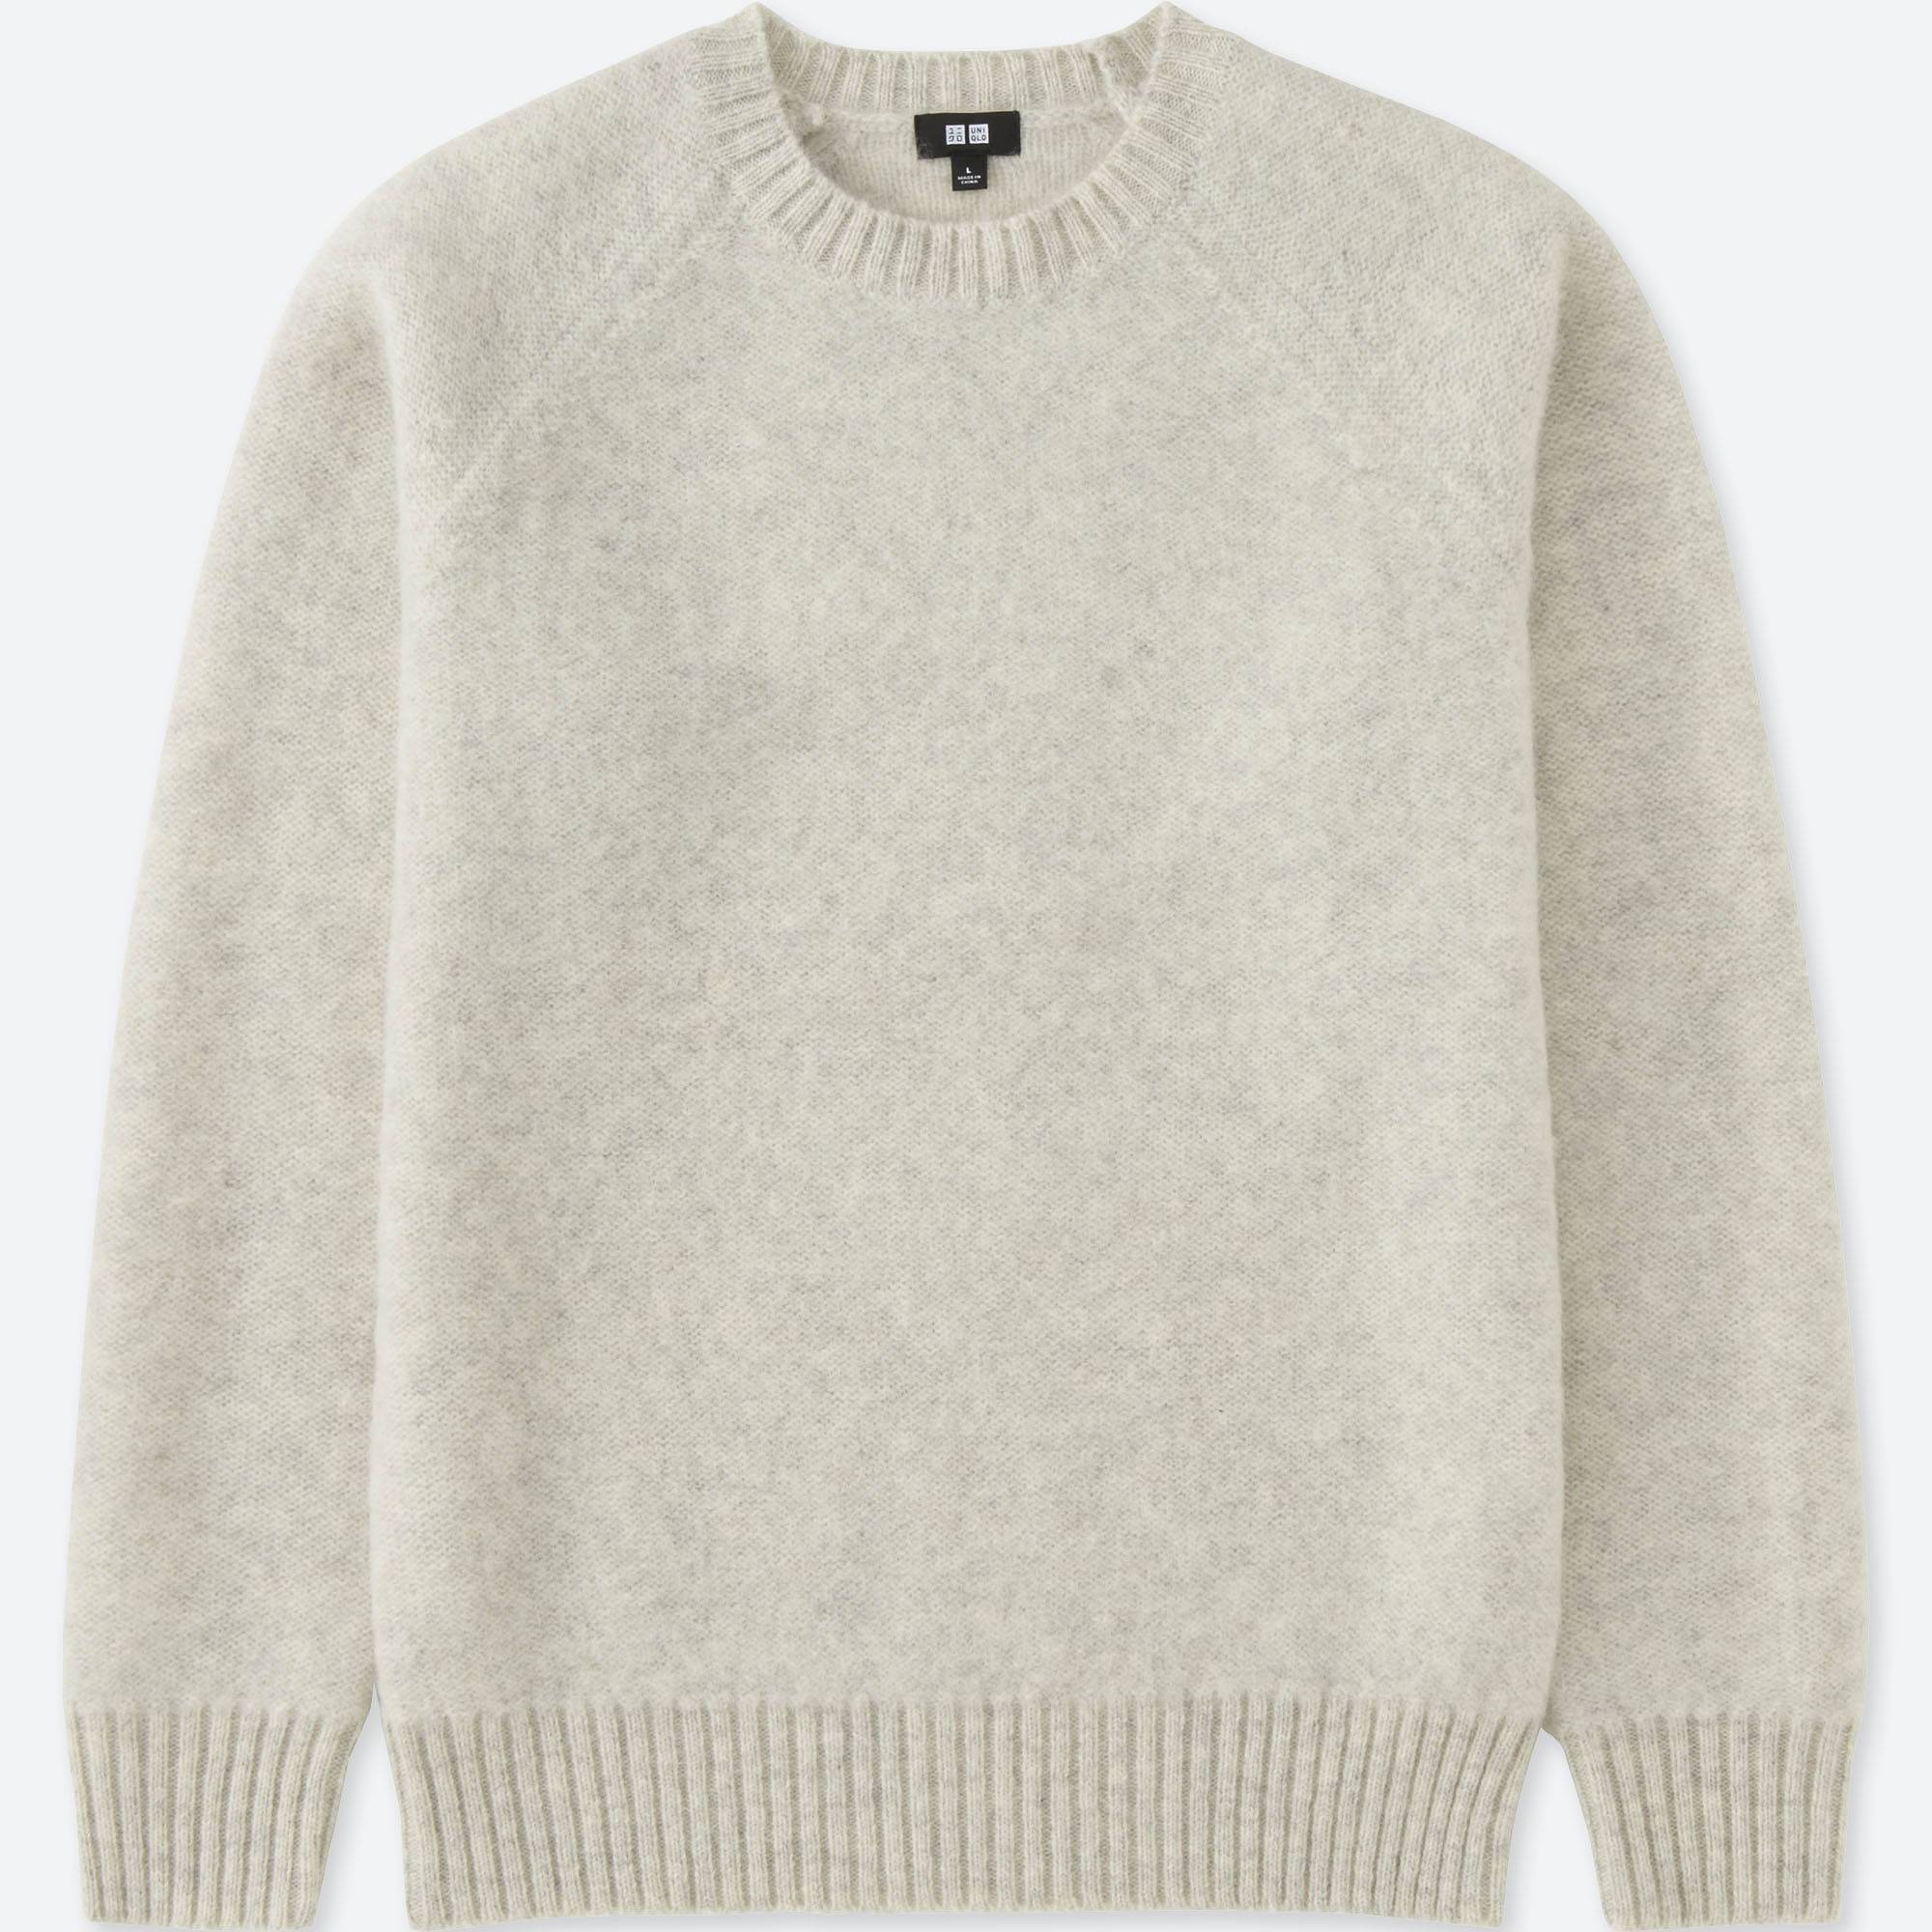 MEN BOILED WOOL CREWNECK SWEATER | UNIQLO US